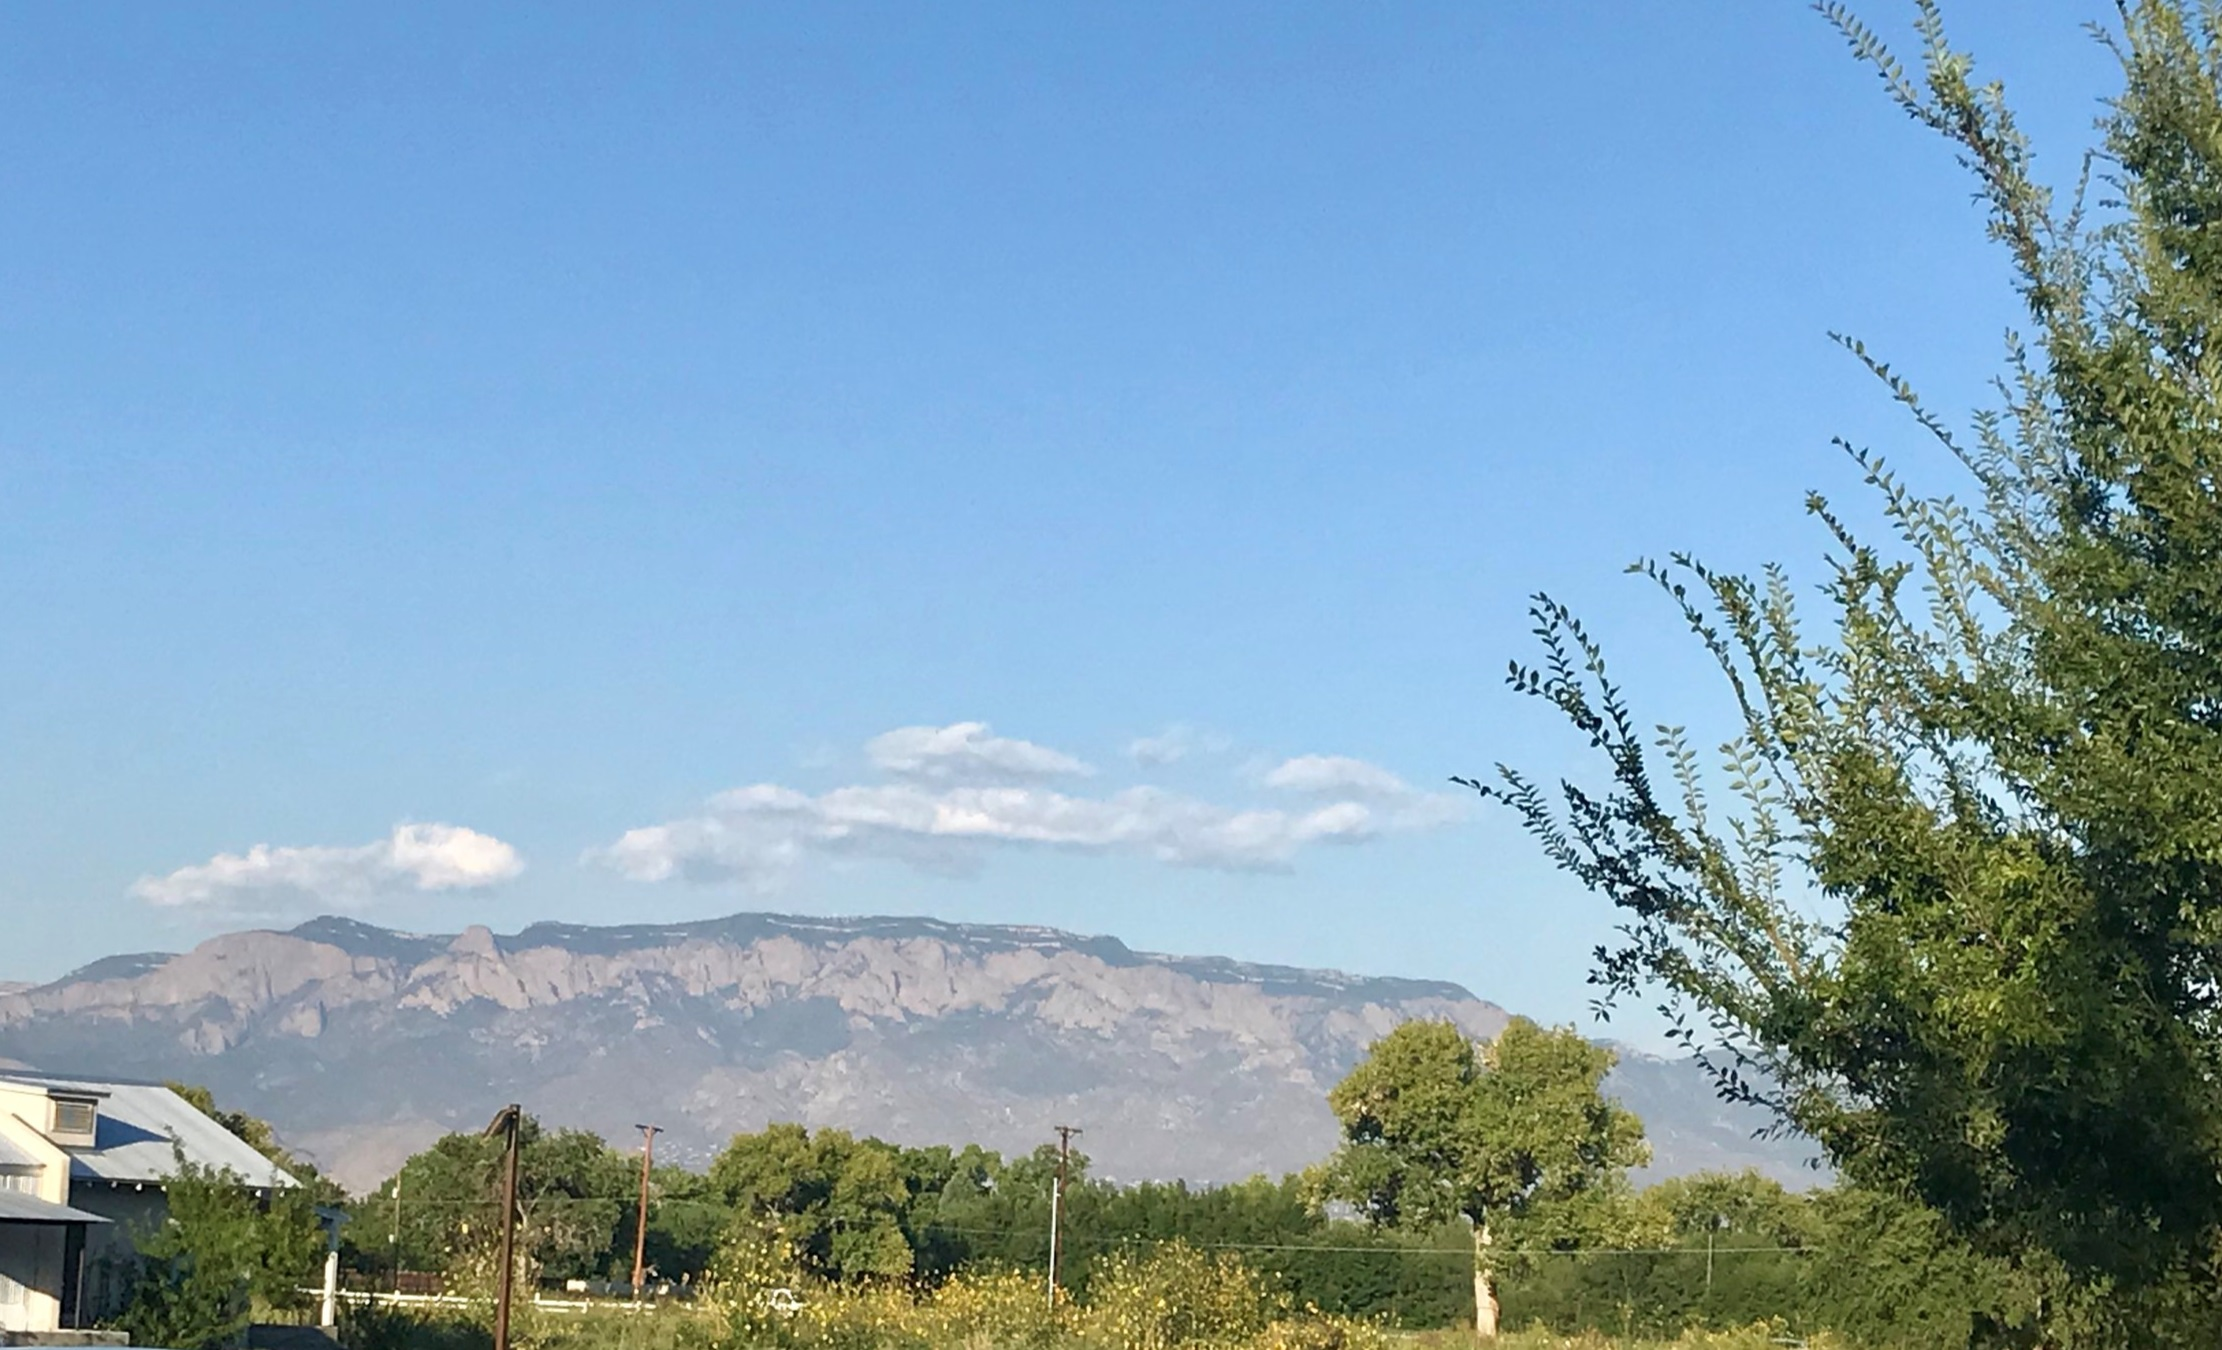 The Sandia Mountain on the east side of Albuquerque, as seen from Los Poblanos